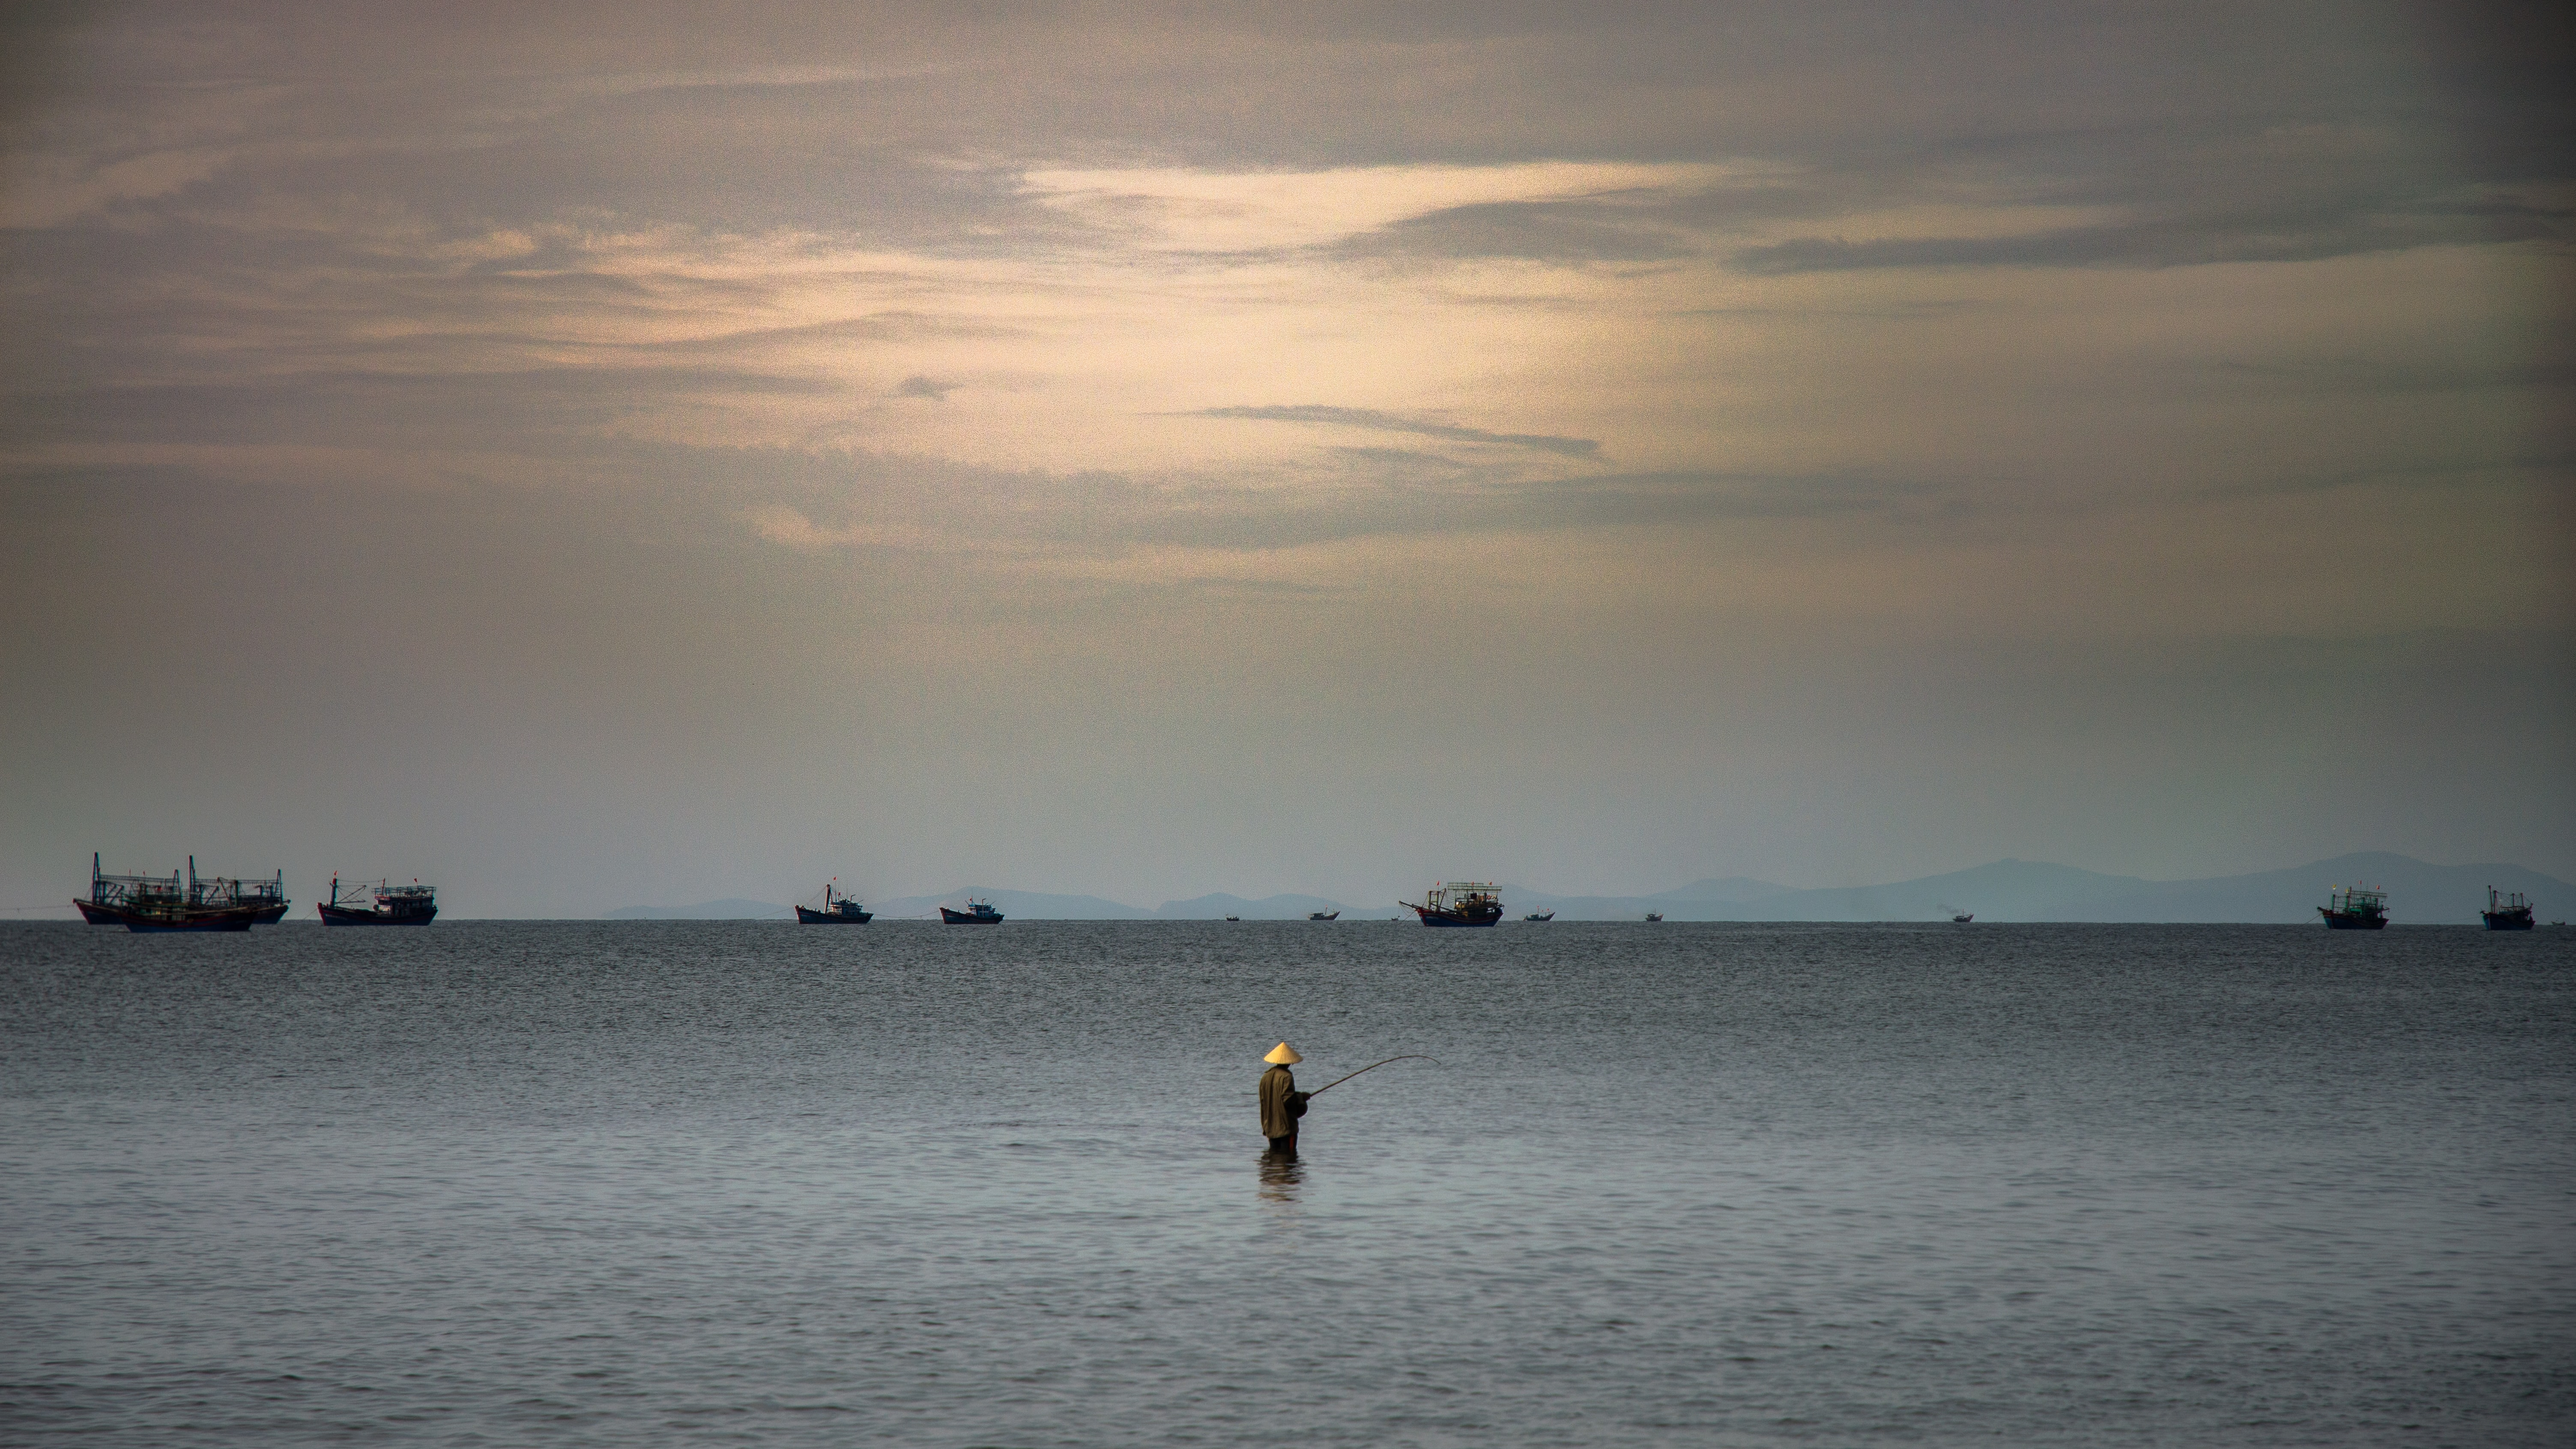 person fishing in the middle of body of water